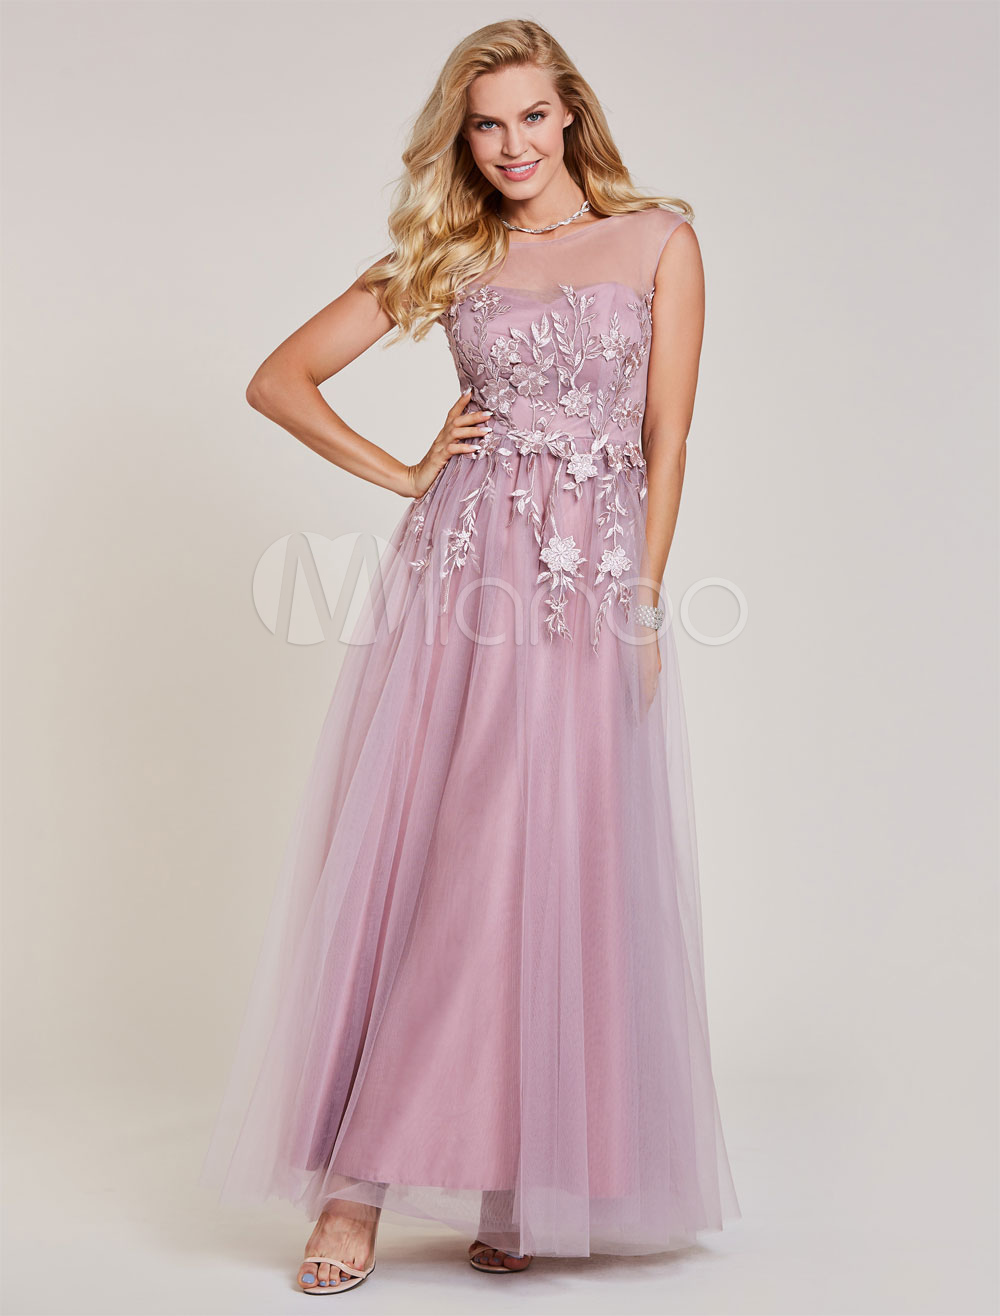 Buy Prom Dresses Long Lace Applique Tulle Cameo Pink Illusion Sleeveless Floor Length Formal Party Dress for $92.39 in Milanoo store